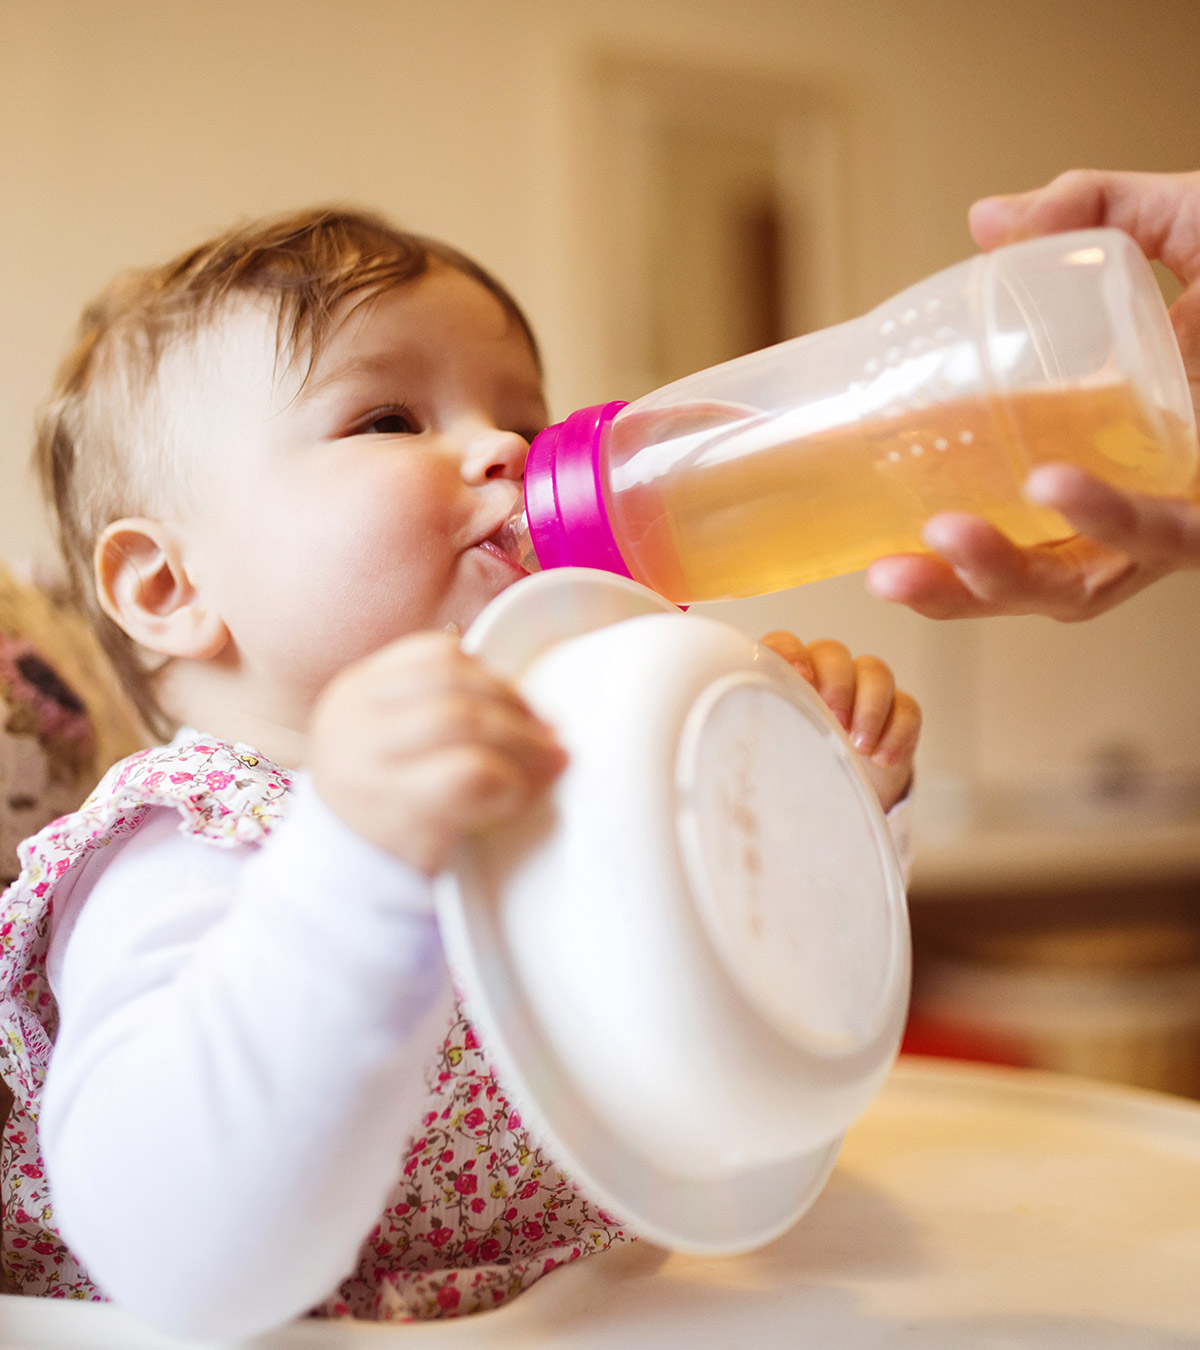 Chamomile Tea For Babies Benefits Dosage And Side Effects